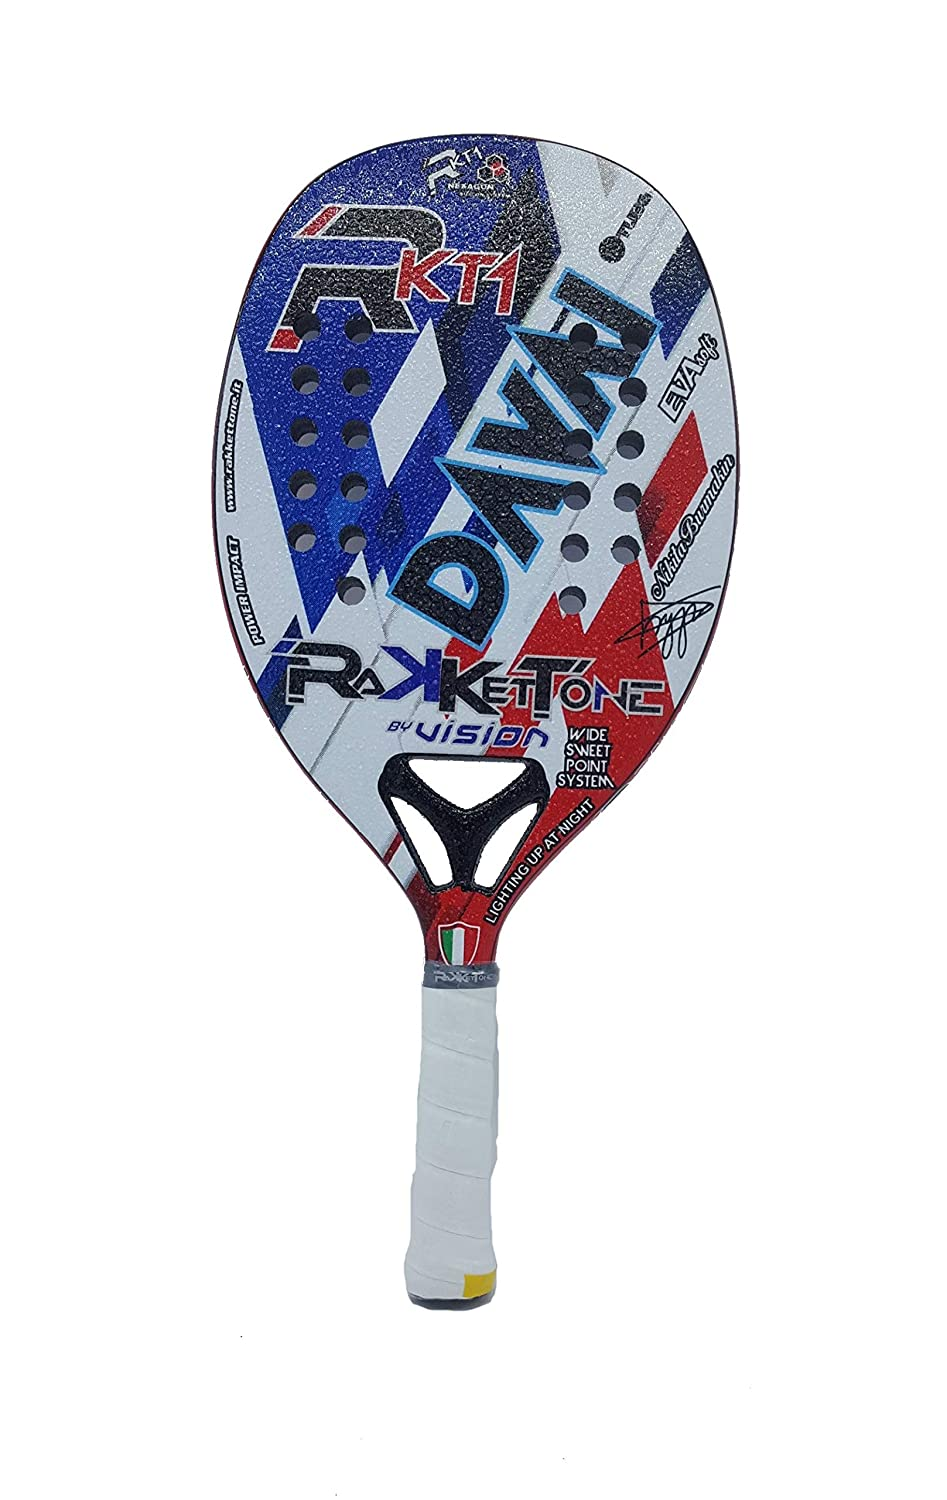 Amazon.com : Rakkettone Racket Racquet Beach Tennis Davai 2019 : Sports & Outdoors